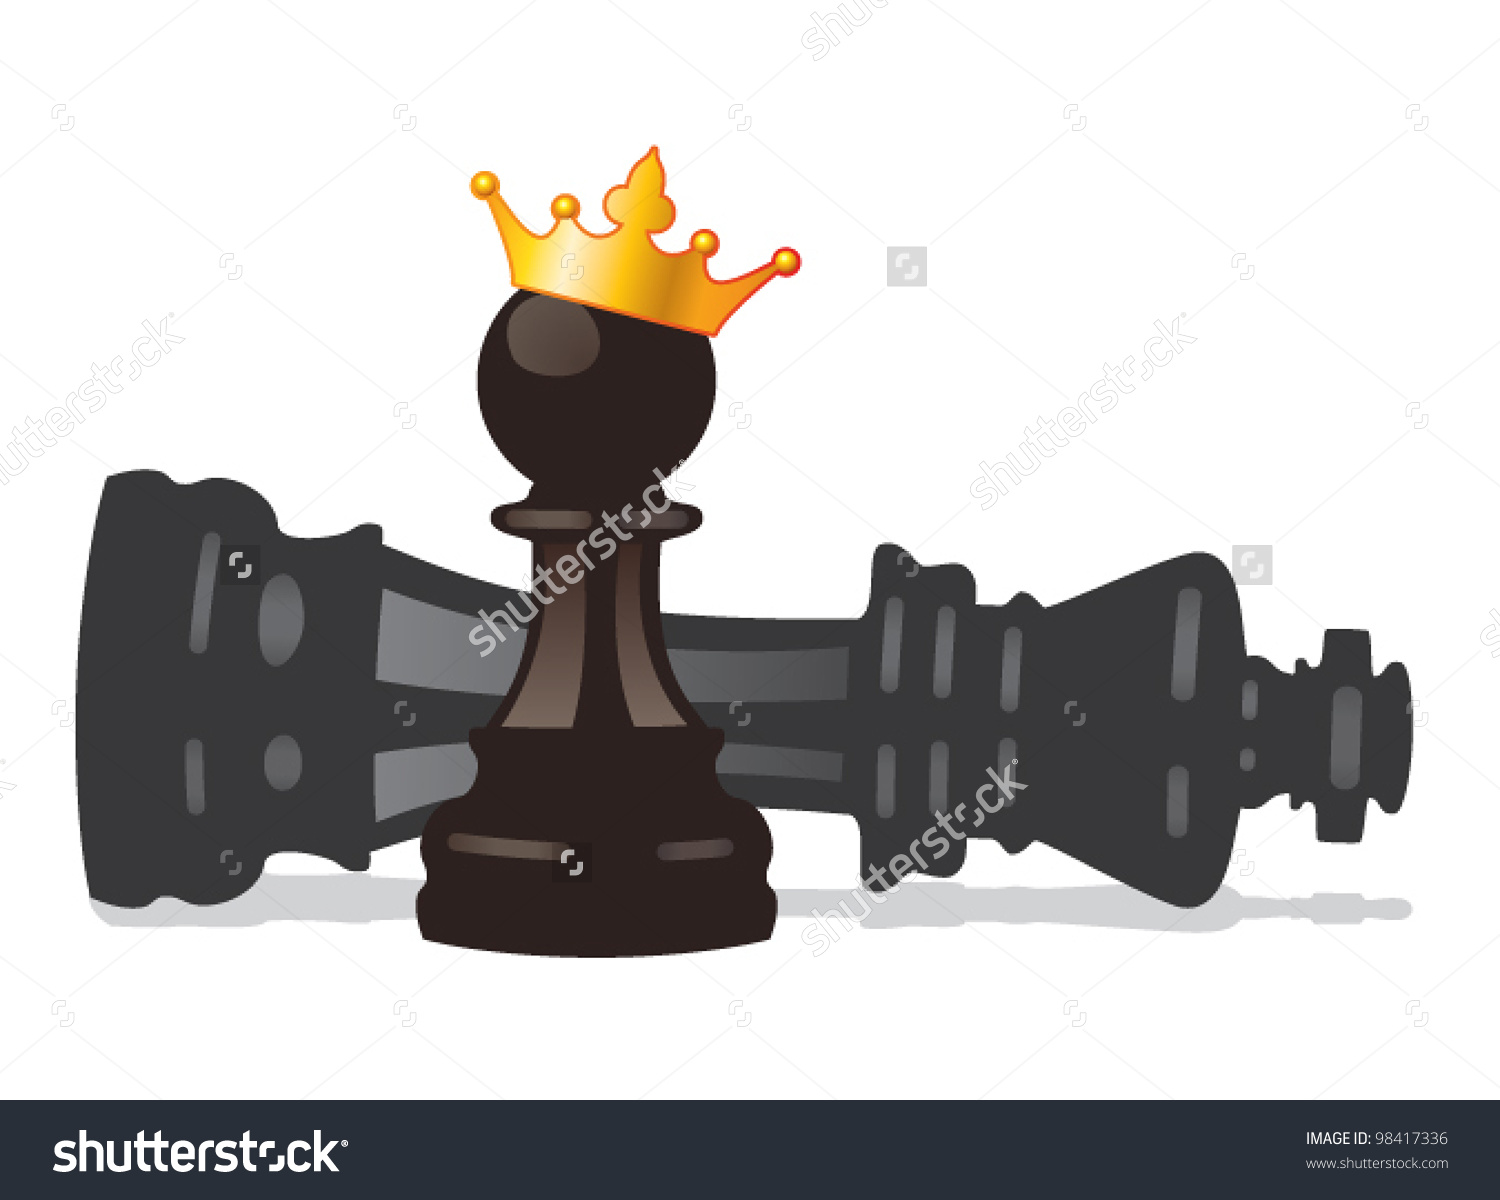 Vector Chess Pawn Golden Crown Defeated Stock Vector 98417336.